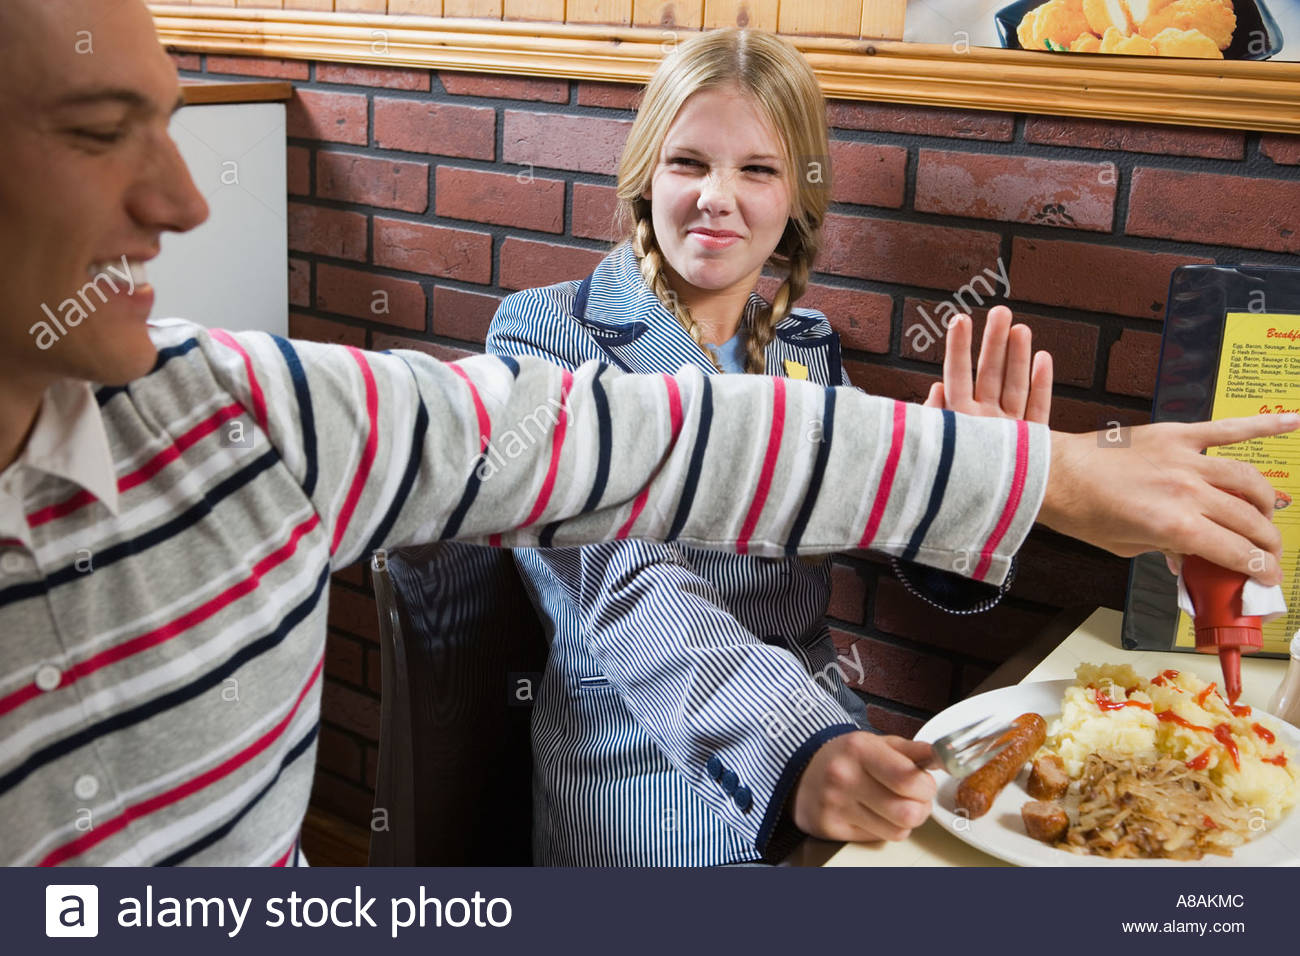 Couple eating in cafe - Stock Image